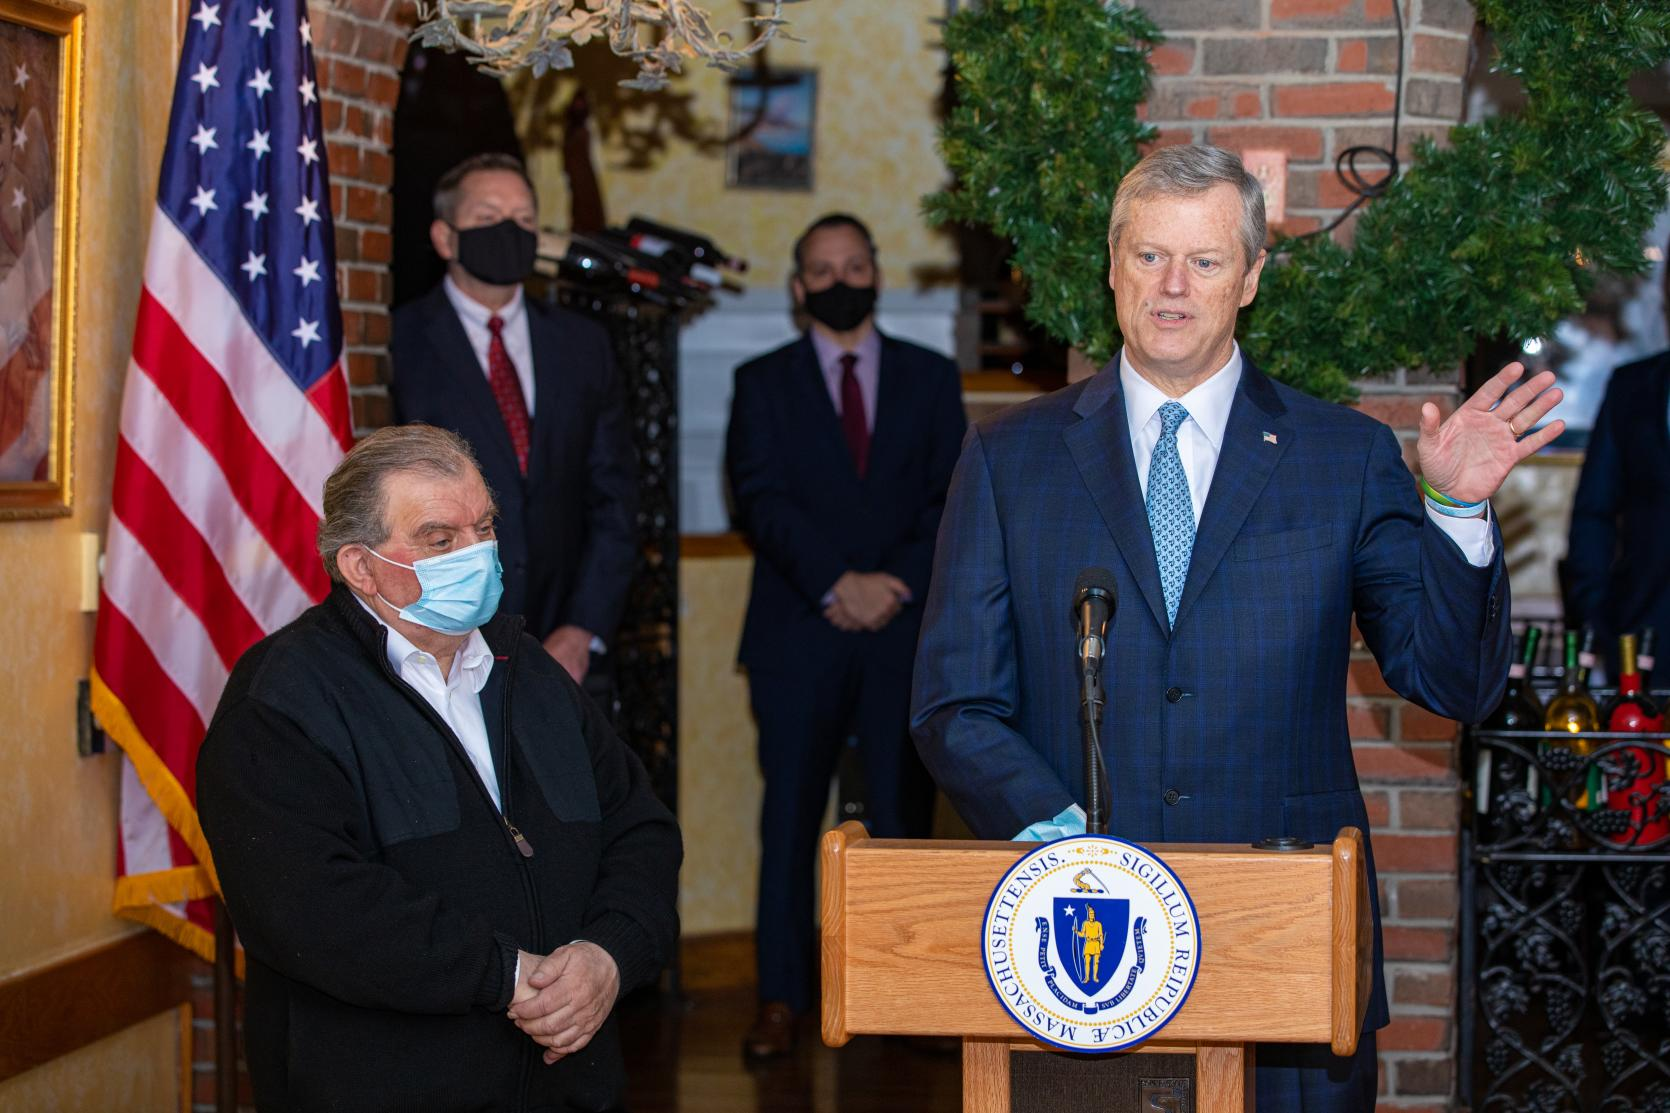 Baker-Polito Administration Awards Another $78.5 Million in Additional Grants to 1,595 Businesses Most Impacted by the Pandemic